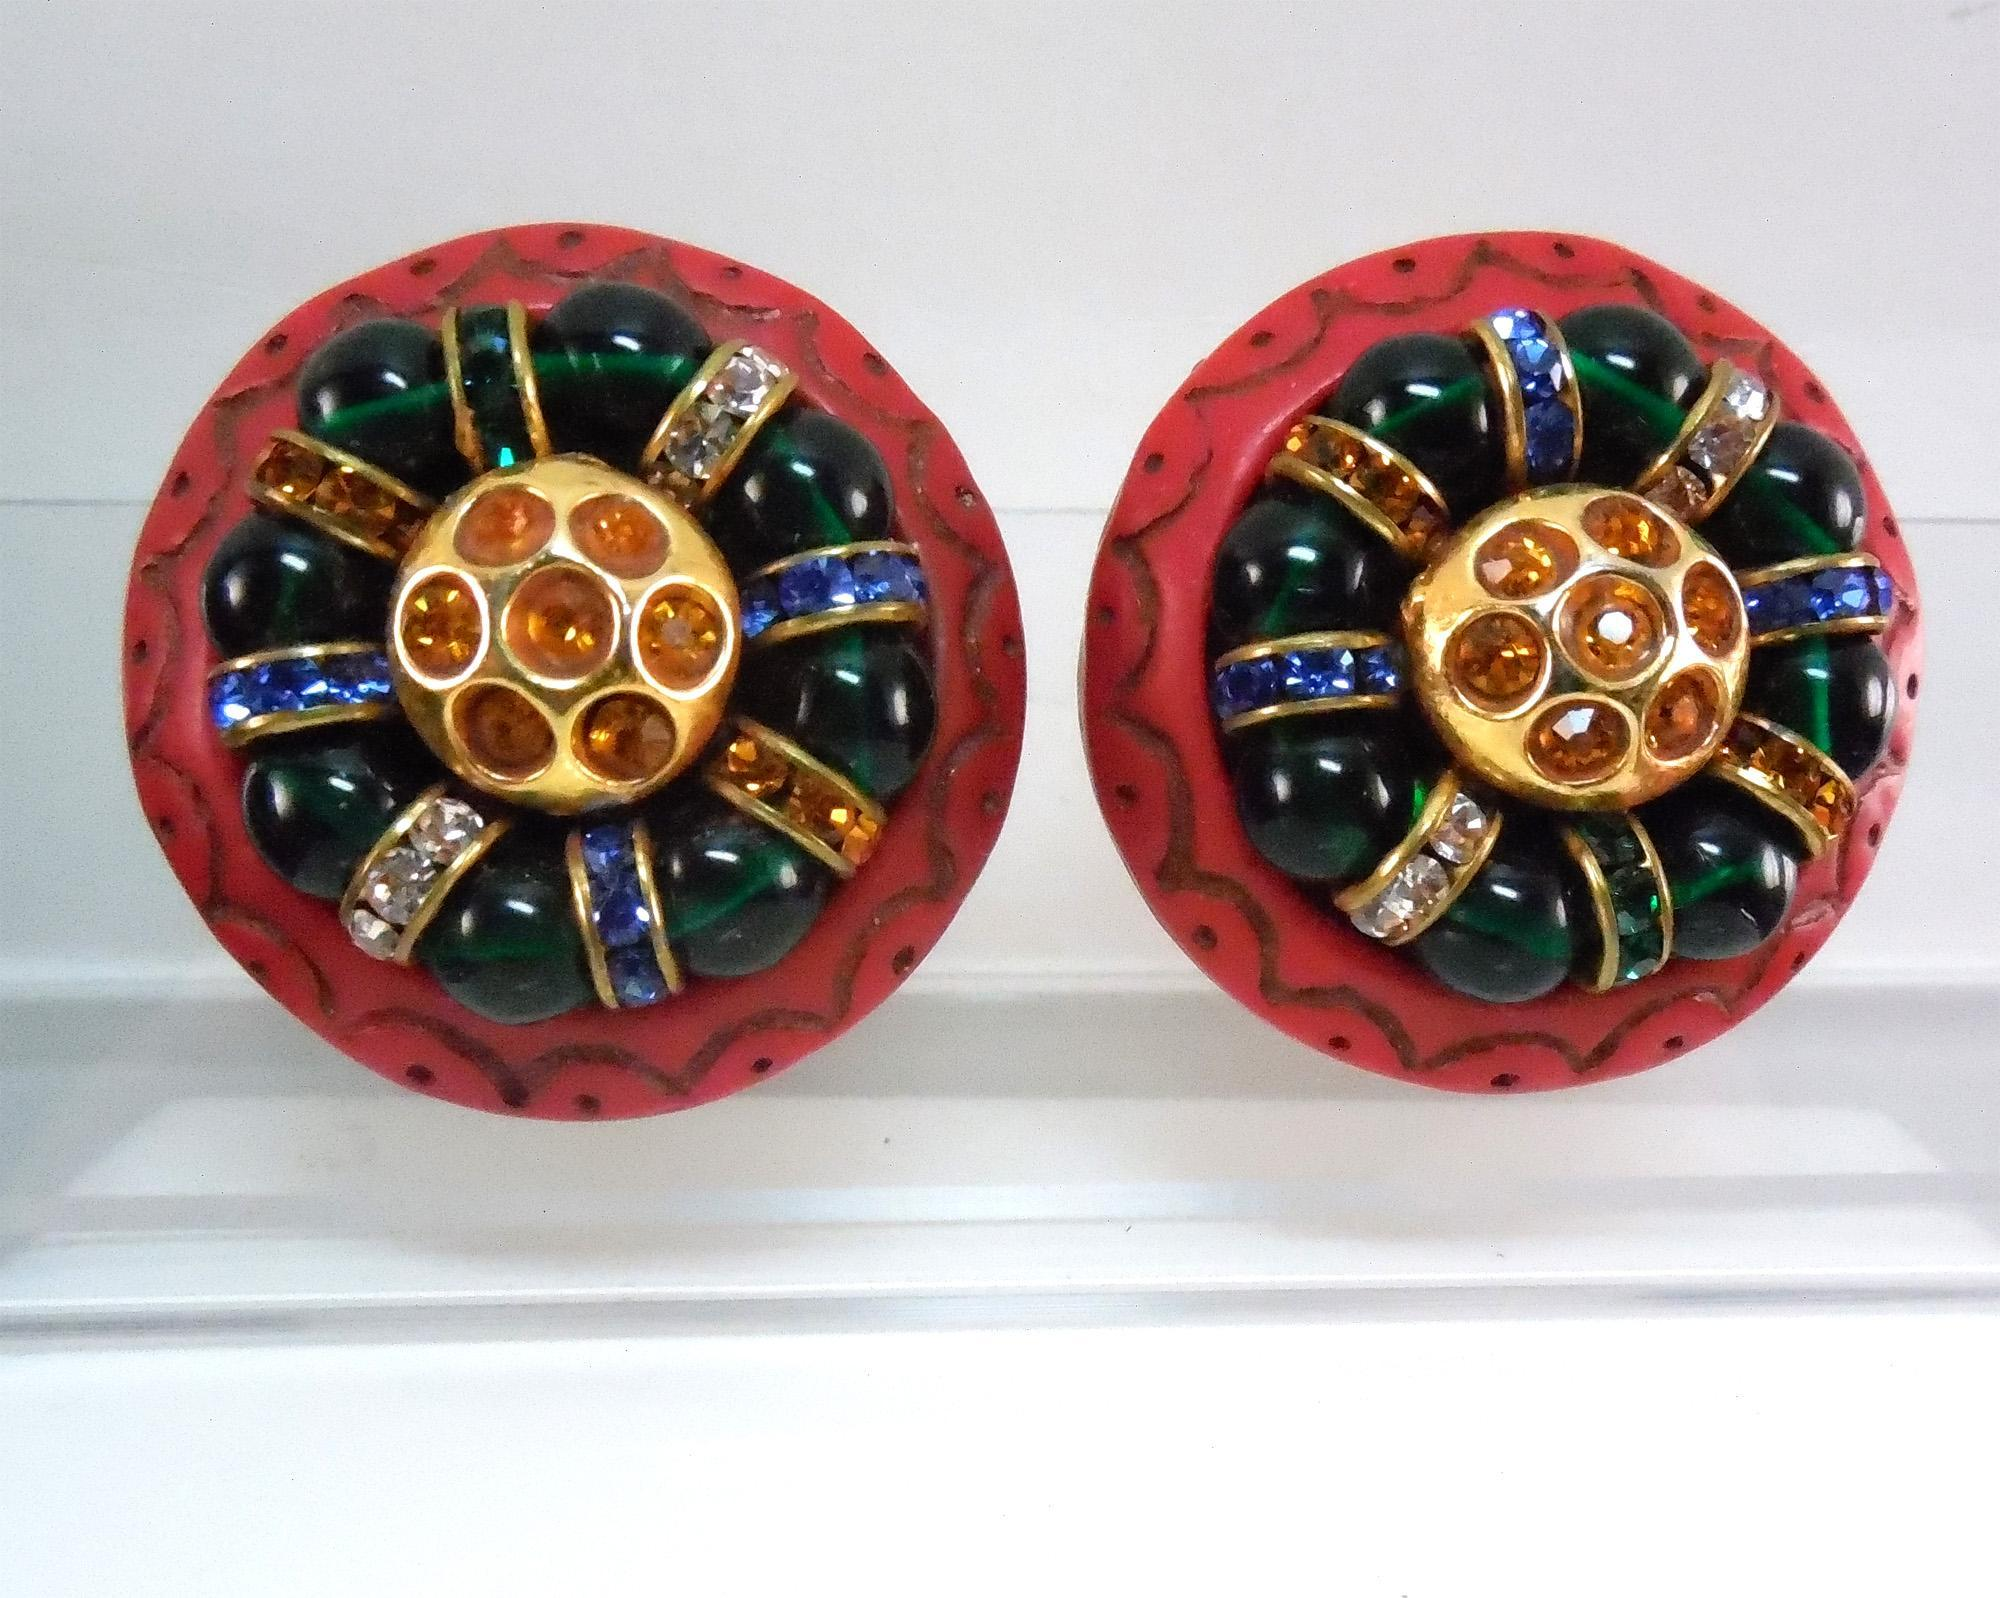 Vibrant Large Runway Red Resin and Glass Earrings Signed Kalinger - Paris France